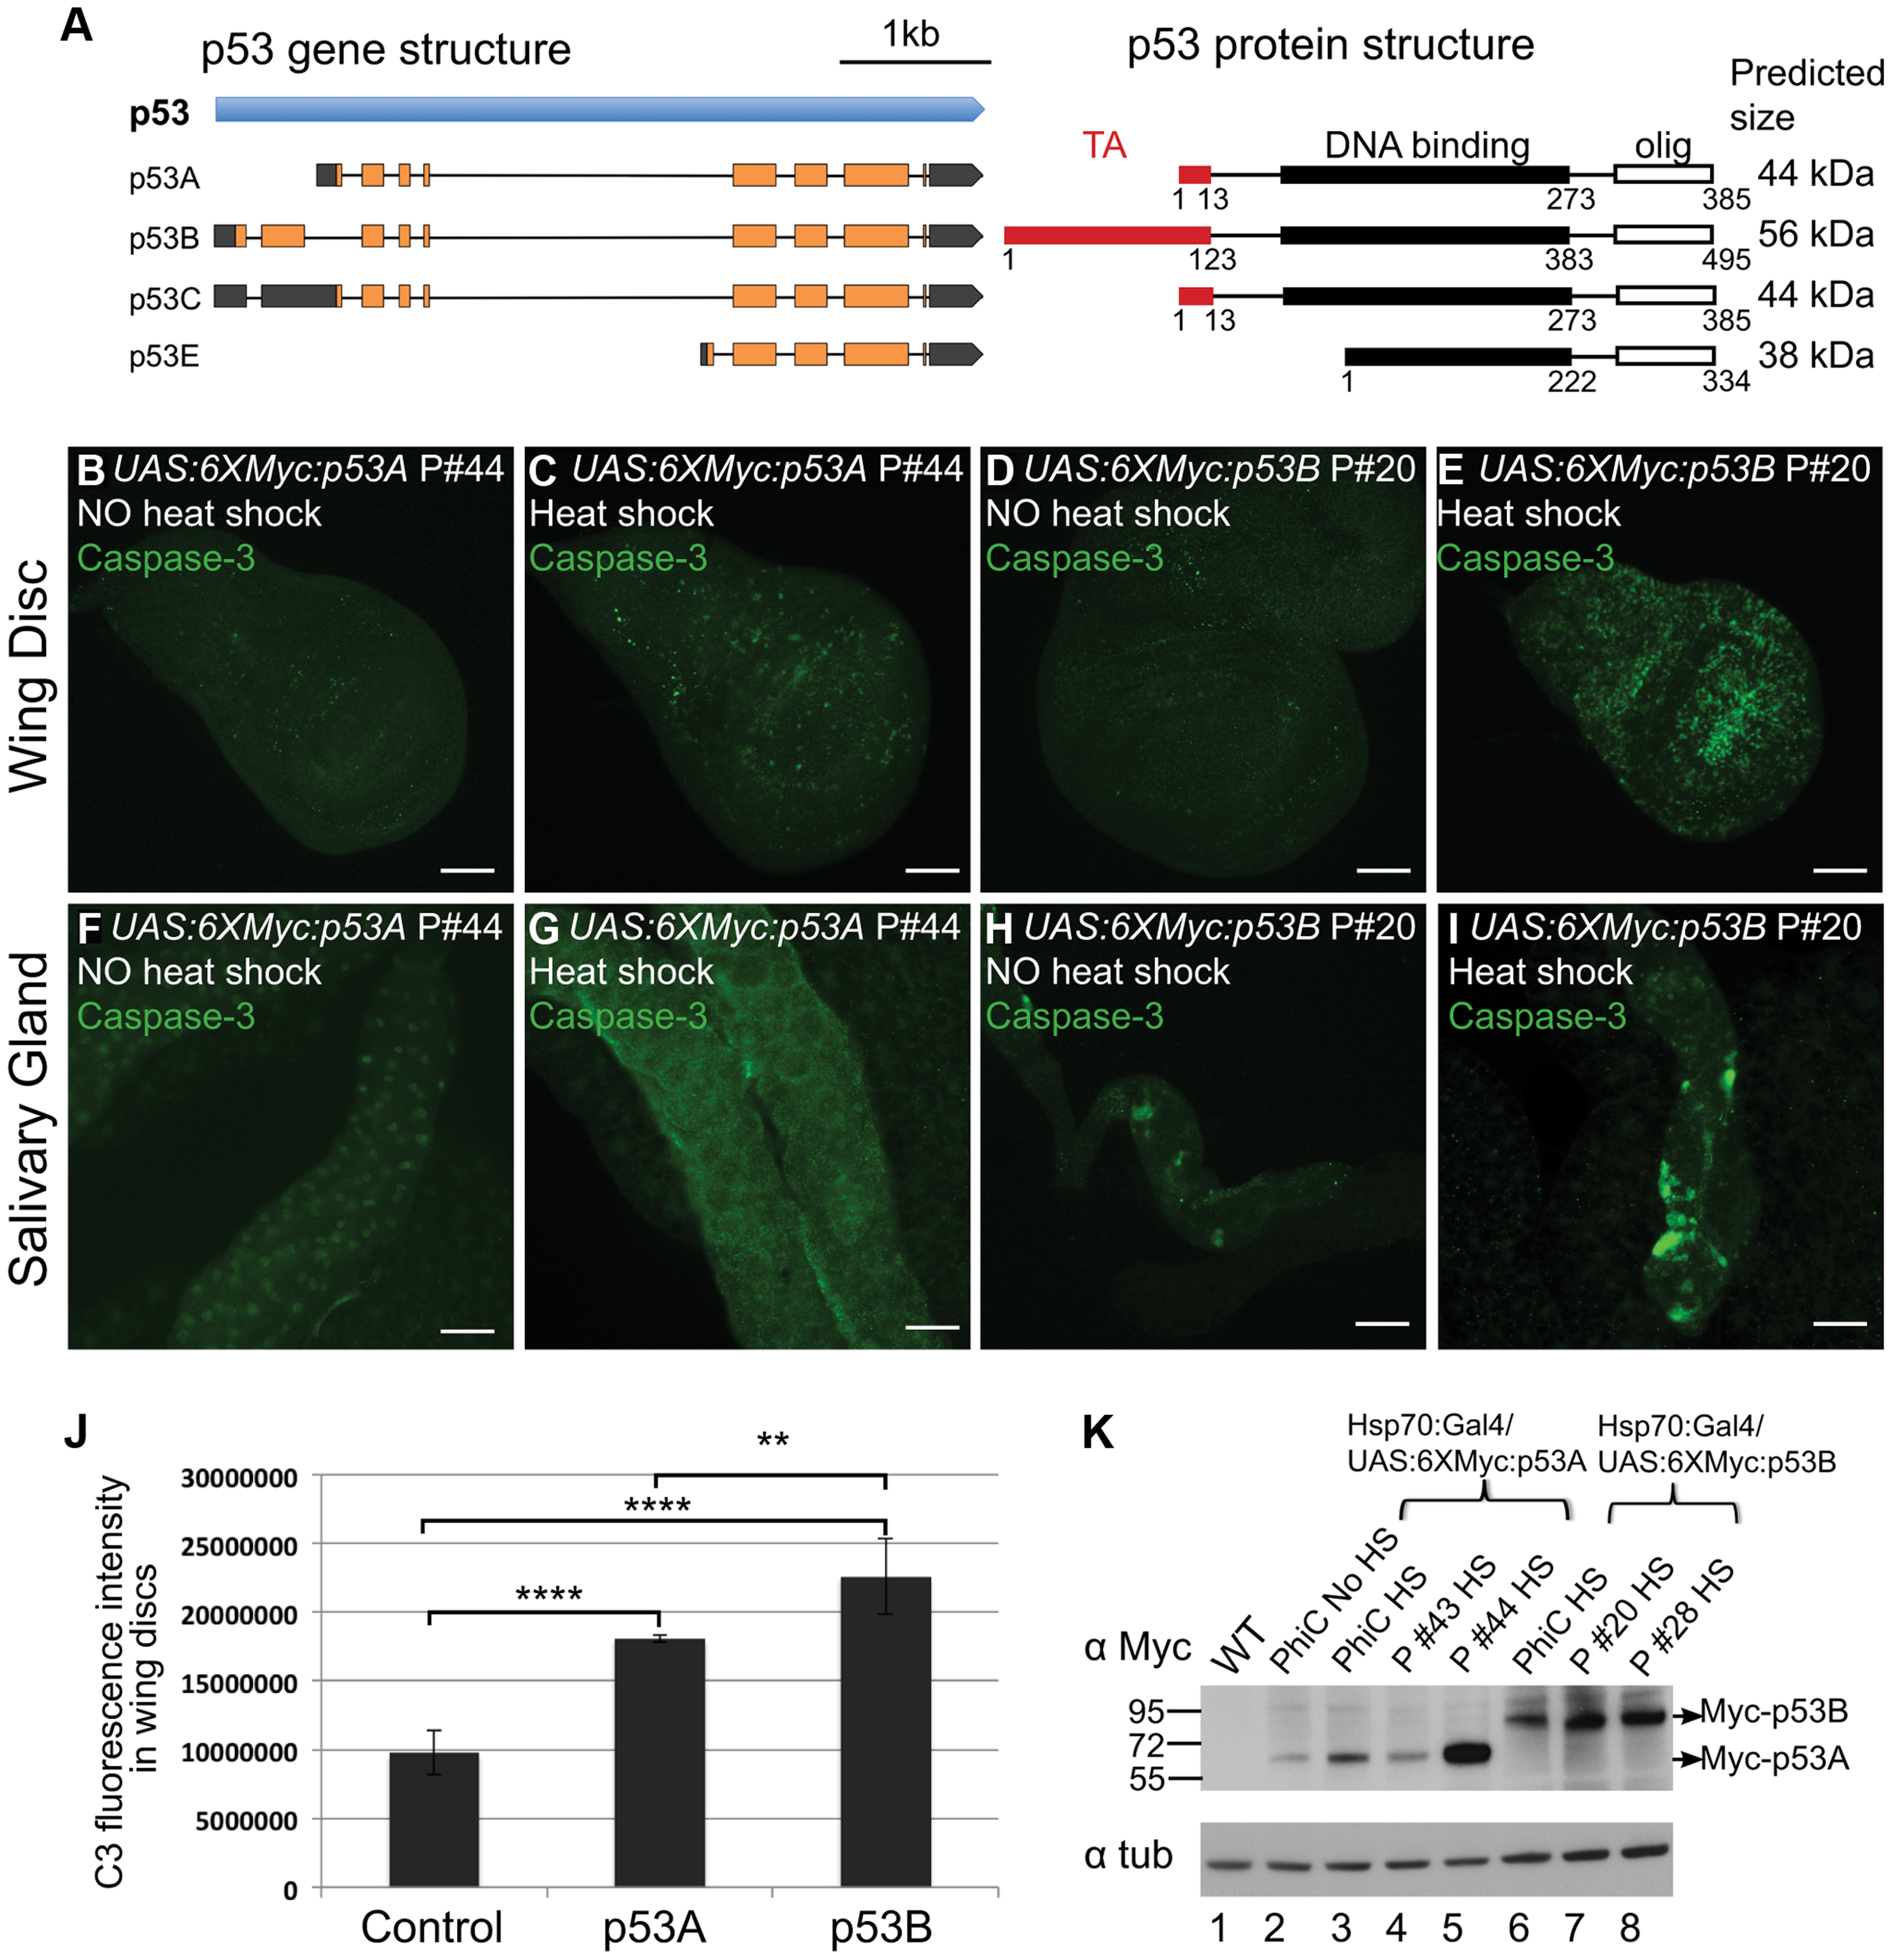 Over-expression of the p53B isoform, but not p53A, induces apoptosis in endocycling cells.